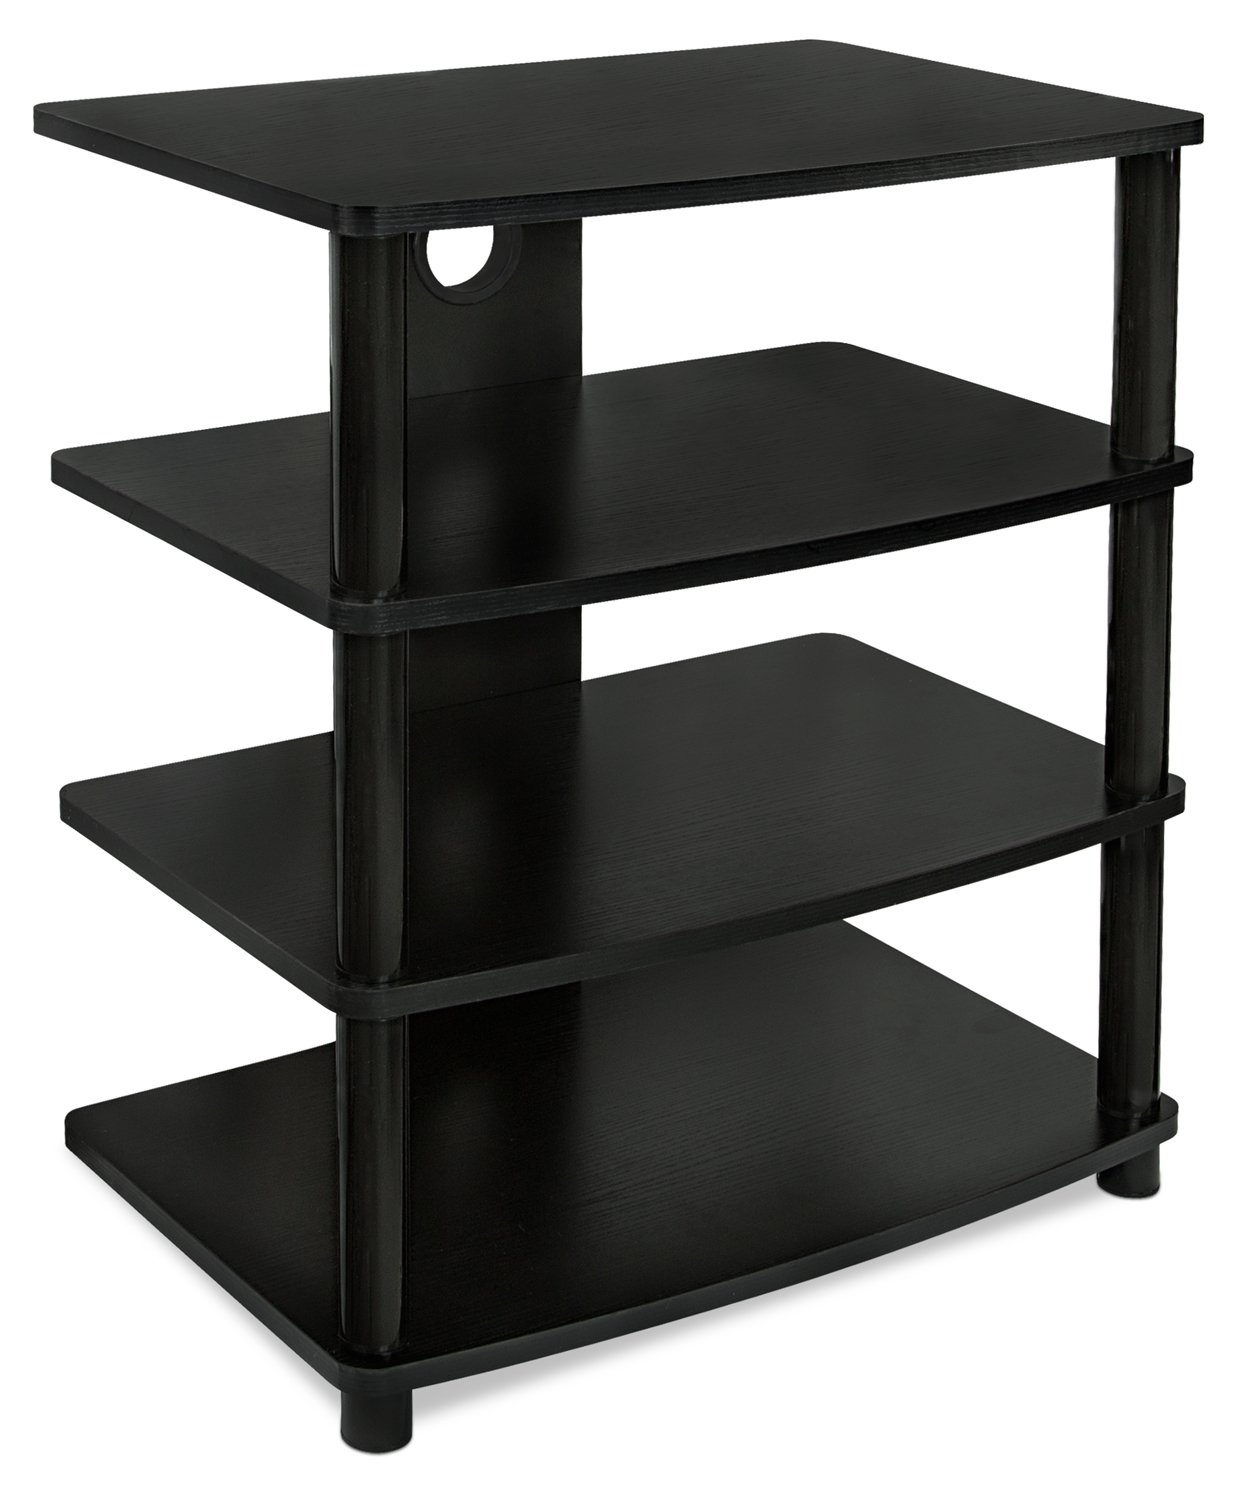 Mount-It! Media Stand Furniture Home Entertainment Center with 4 Wood Shelves for LCD LED 4K TV, Xbox 1, PlayStation, Monitors, Speakers, Cable Management Holes, Black (MI-868) MI-868 (TPW1002)